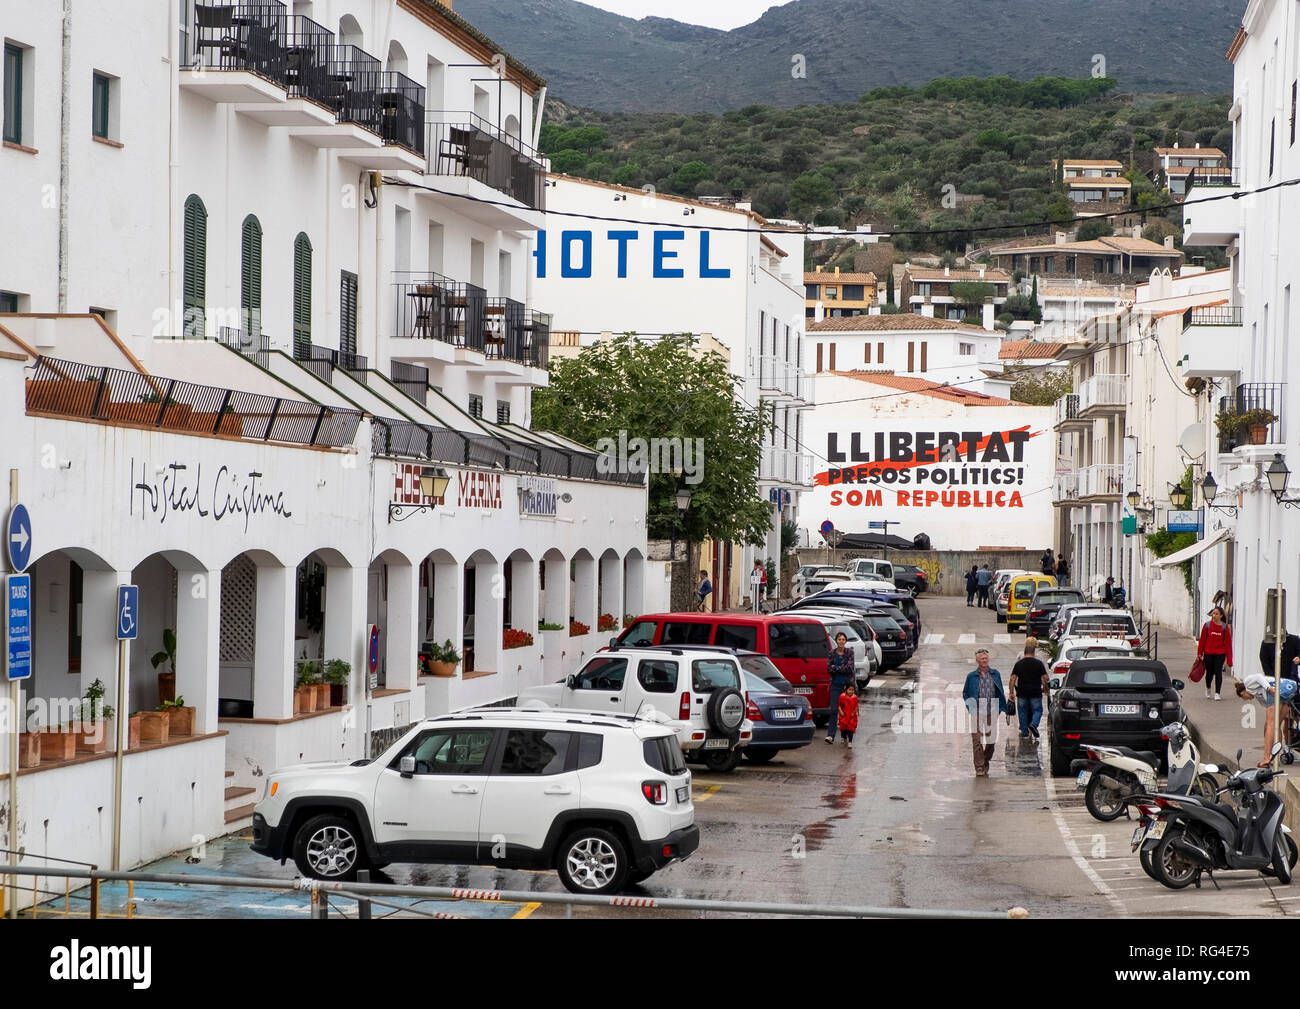 Streets of Cadaques, Catalonia - the Llibertat sign loosely translates as - Freedom for political prisoners, we are a republic Stock Photo